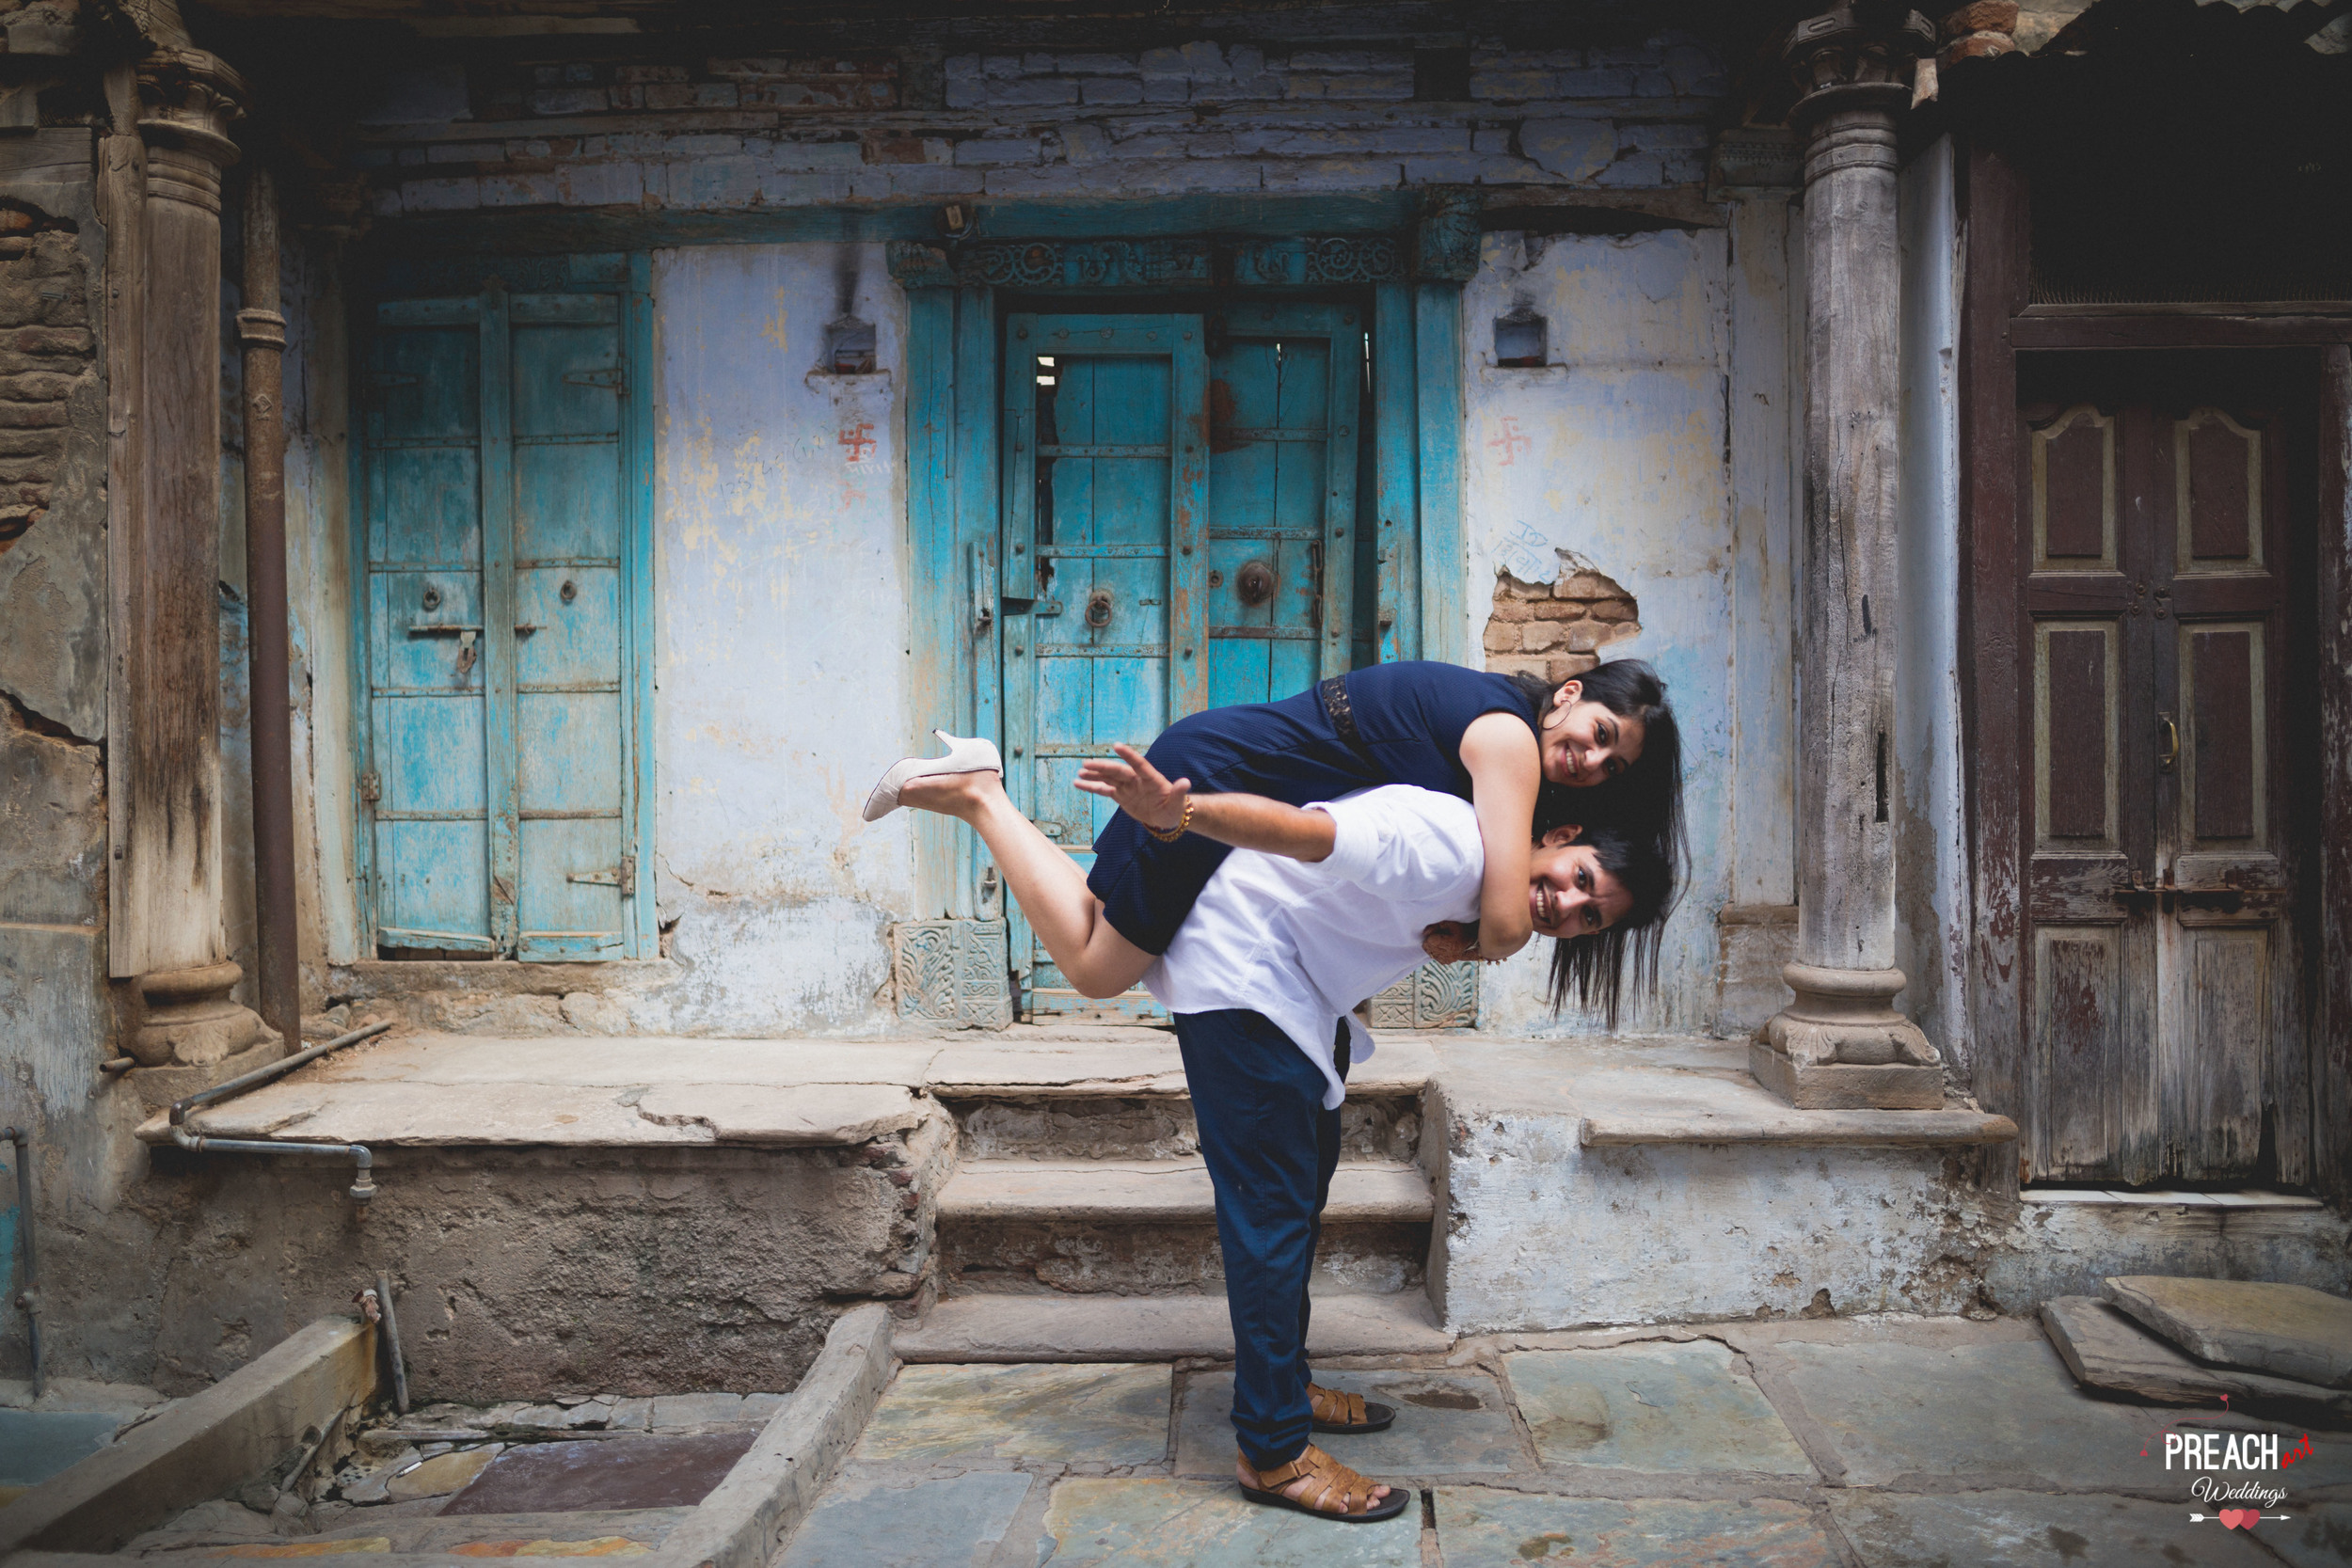 V&M_PRE-WEDDING SHOOT_AHMEDABAD OLD CITY_PREACH ART-32.jpg